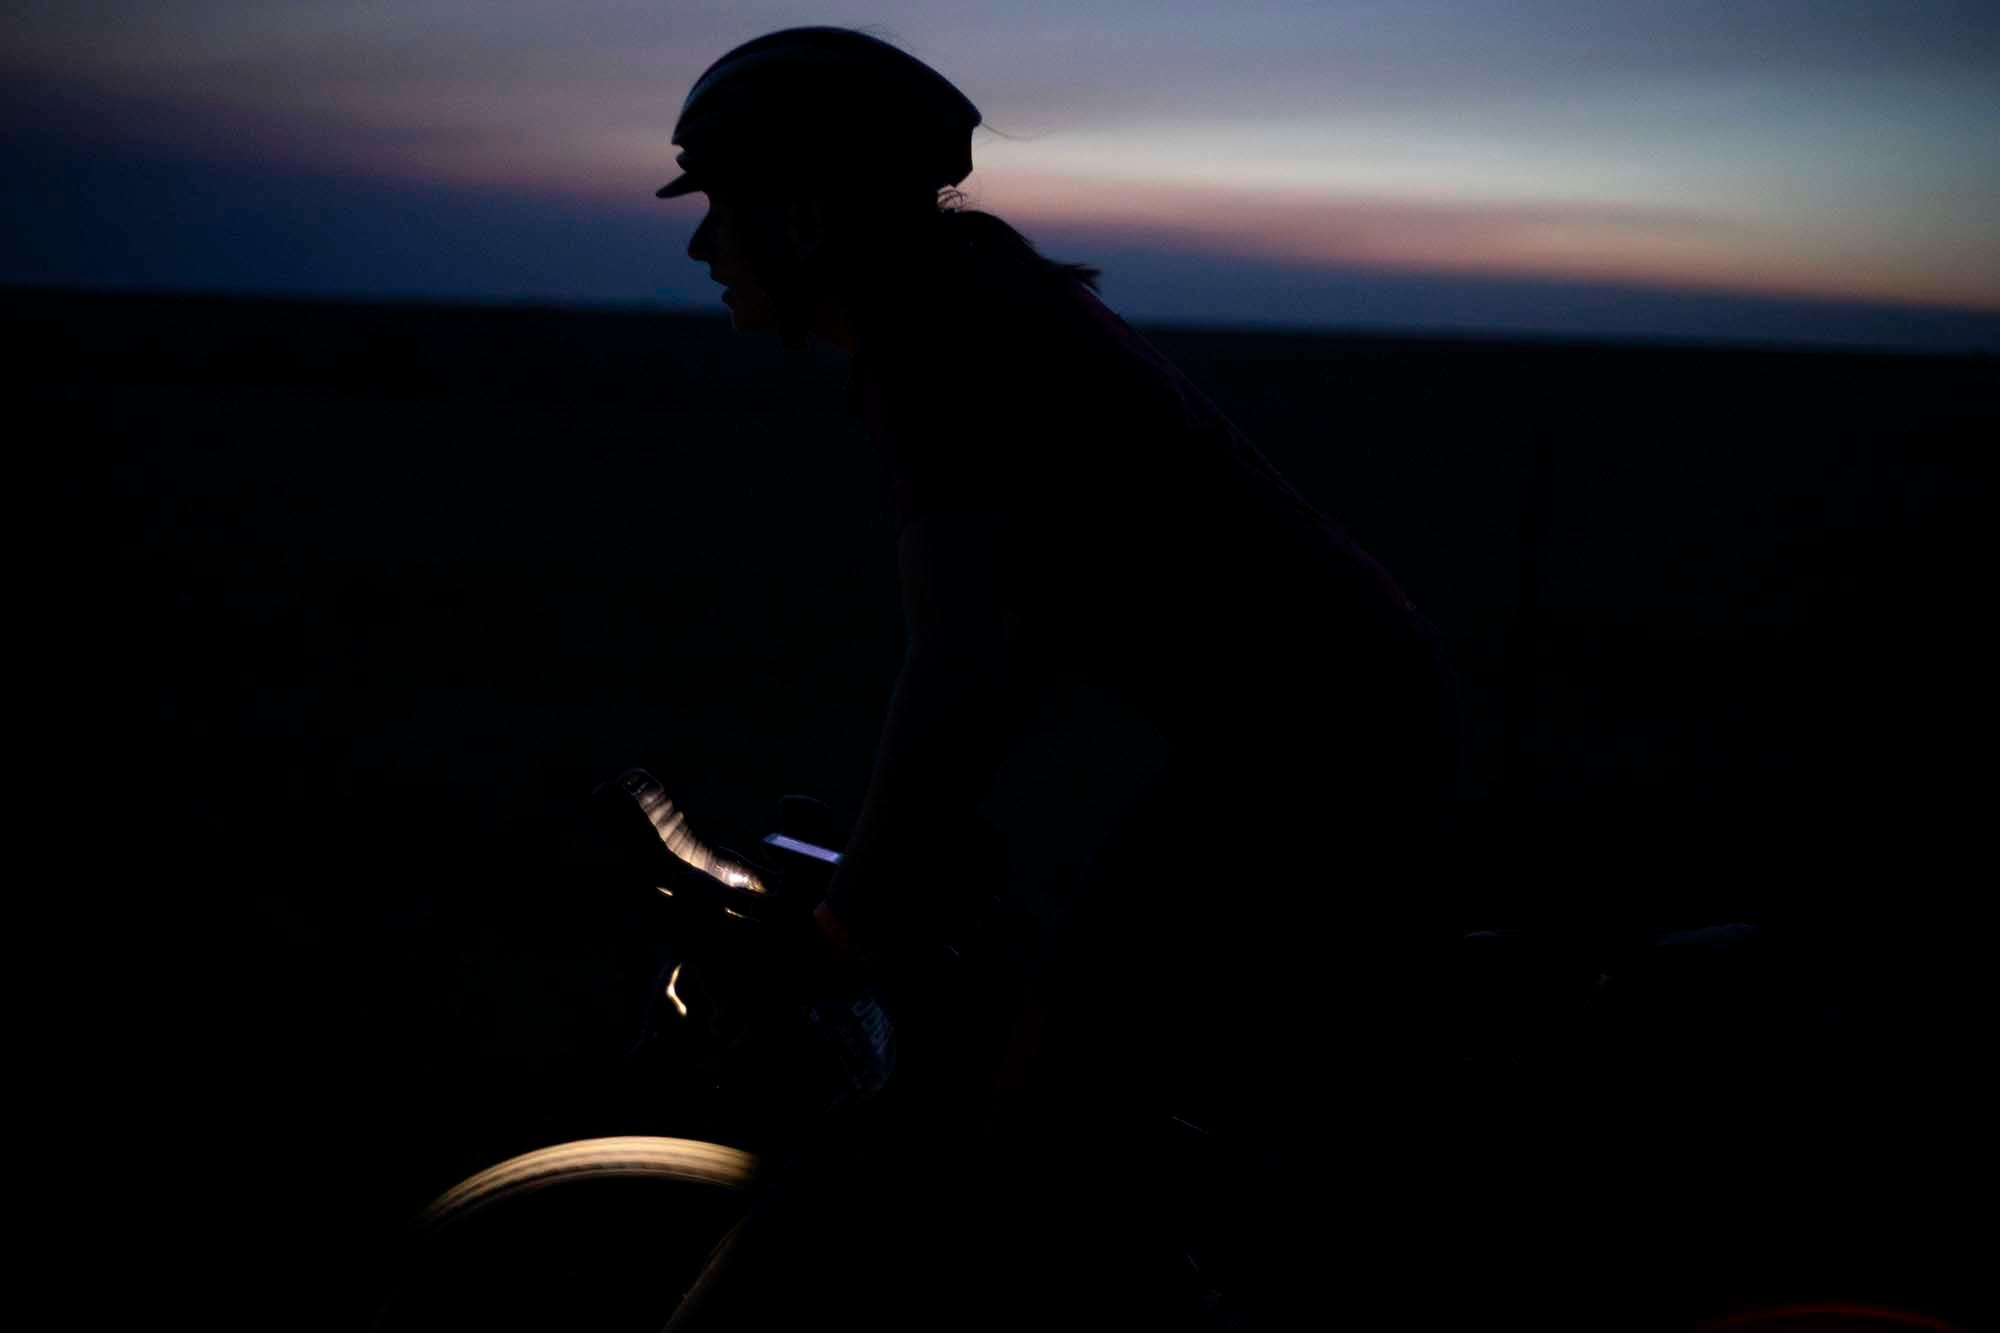 Sunrise after riding for 15 hours in the DKXL 2019. (Rugile Kaladyte)